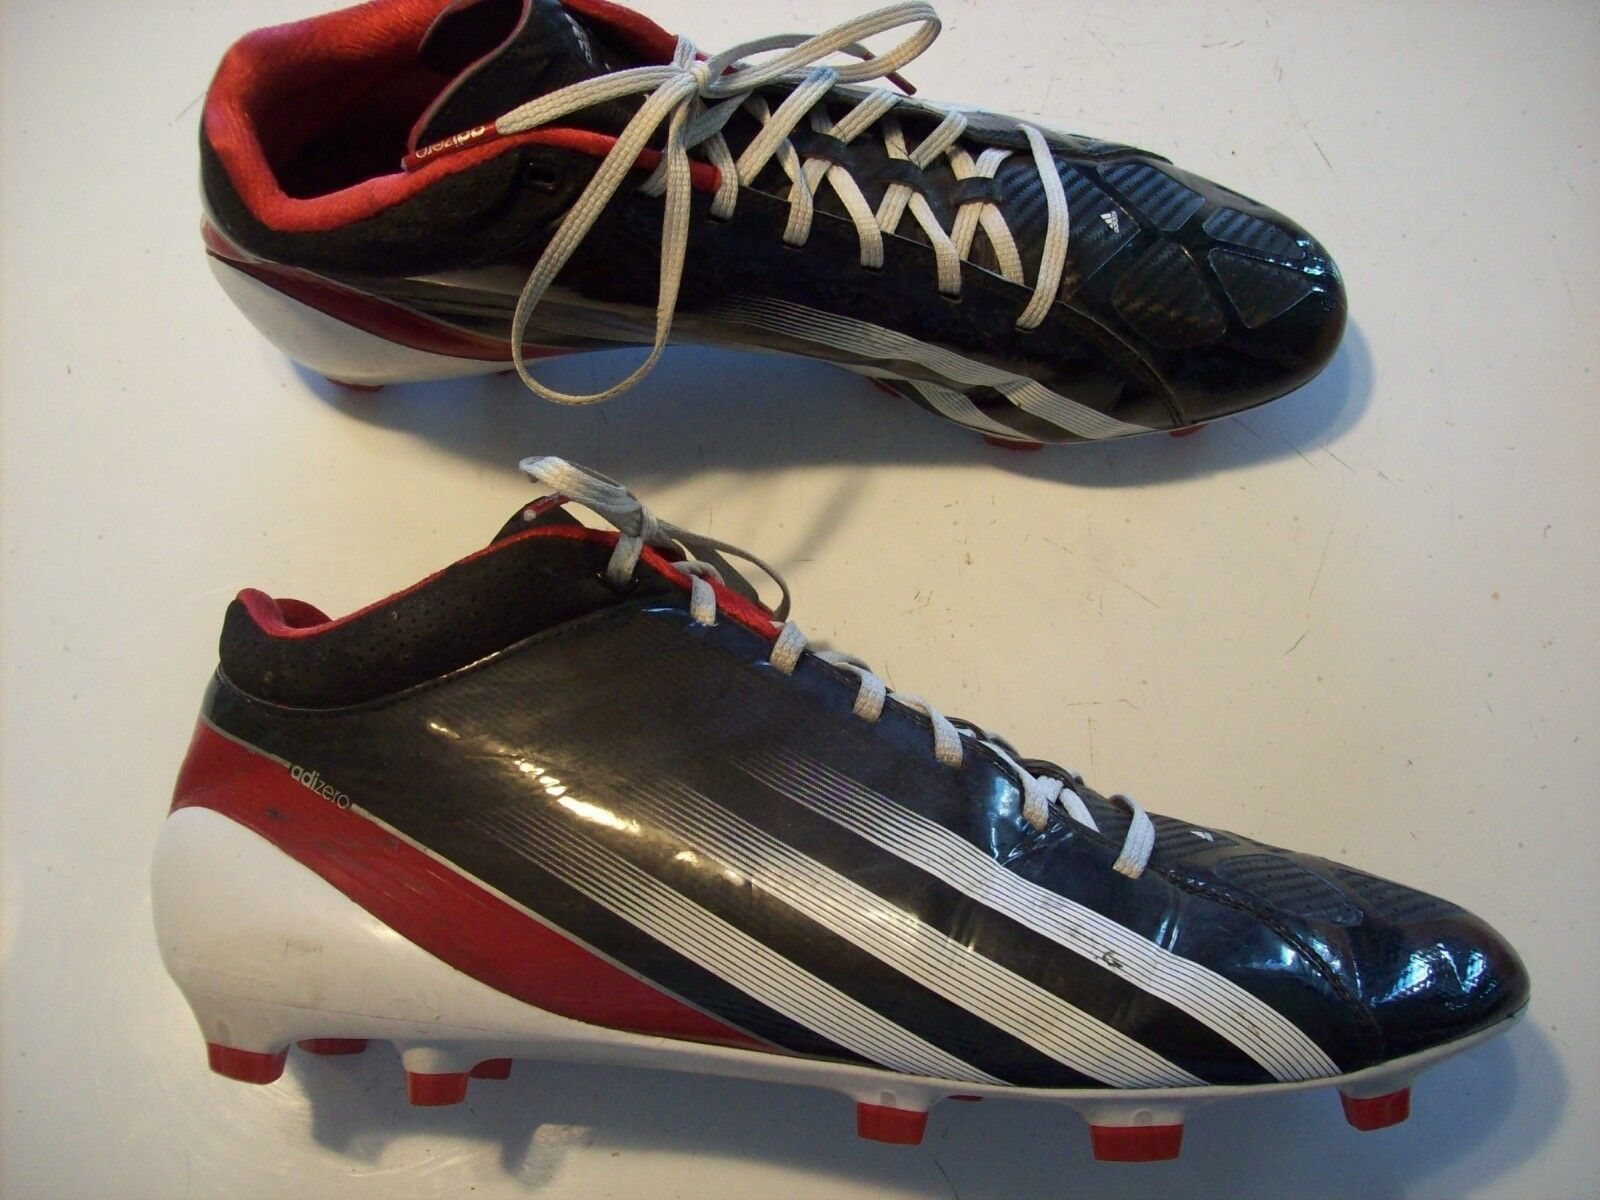 Adidas Adizero Sprint Frame G47836 Football Cleats Black White Shoes Comfortable Wild casual shoes